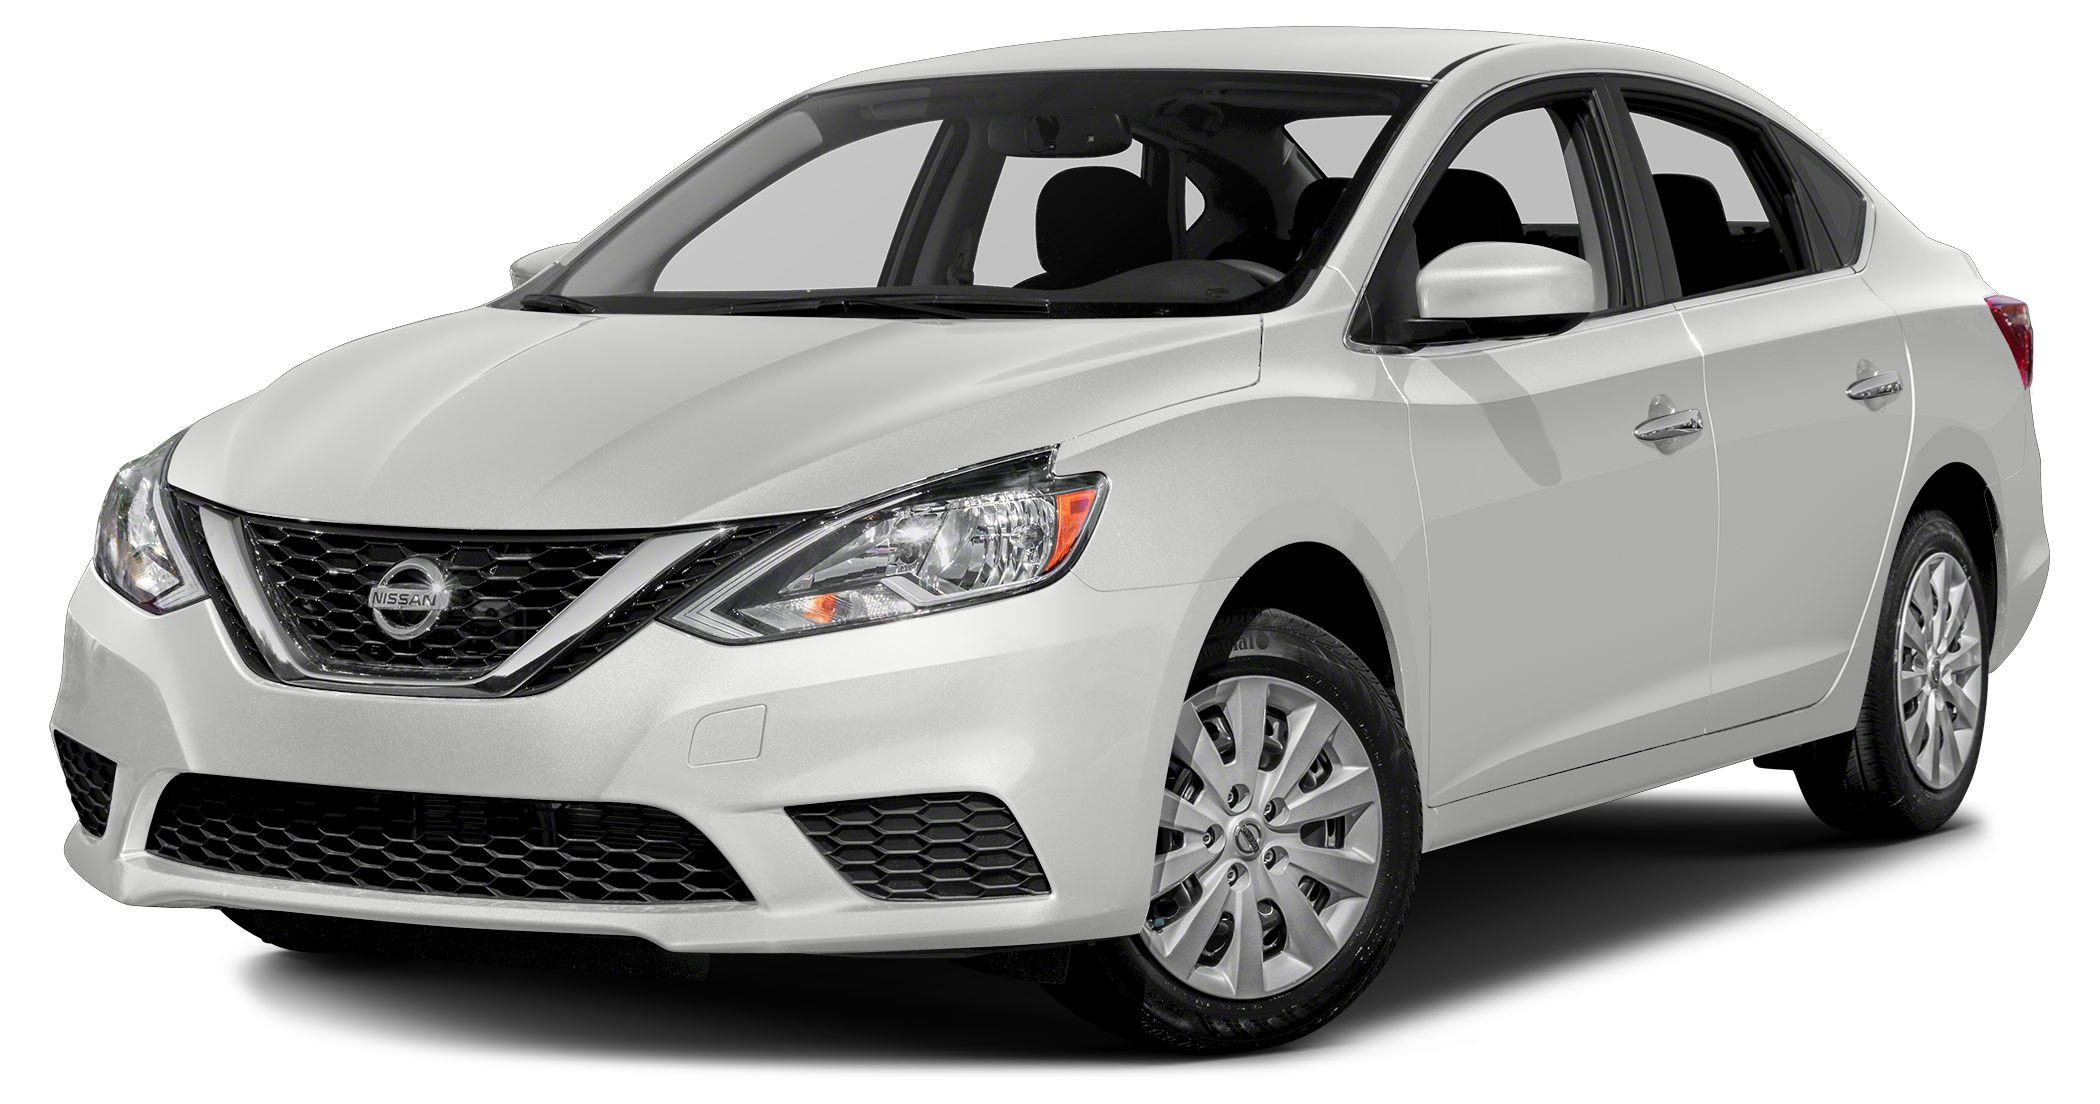 2016 Nissan Sentra SV Miles 6Color Aspen White Pearl Stock 16S321 VIN 3N1AB7AP4GY262738